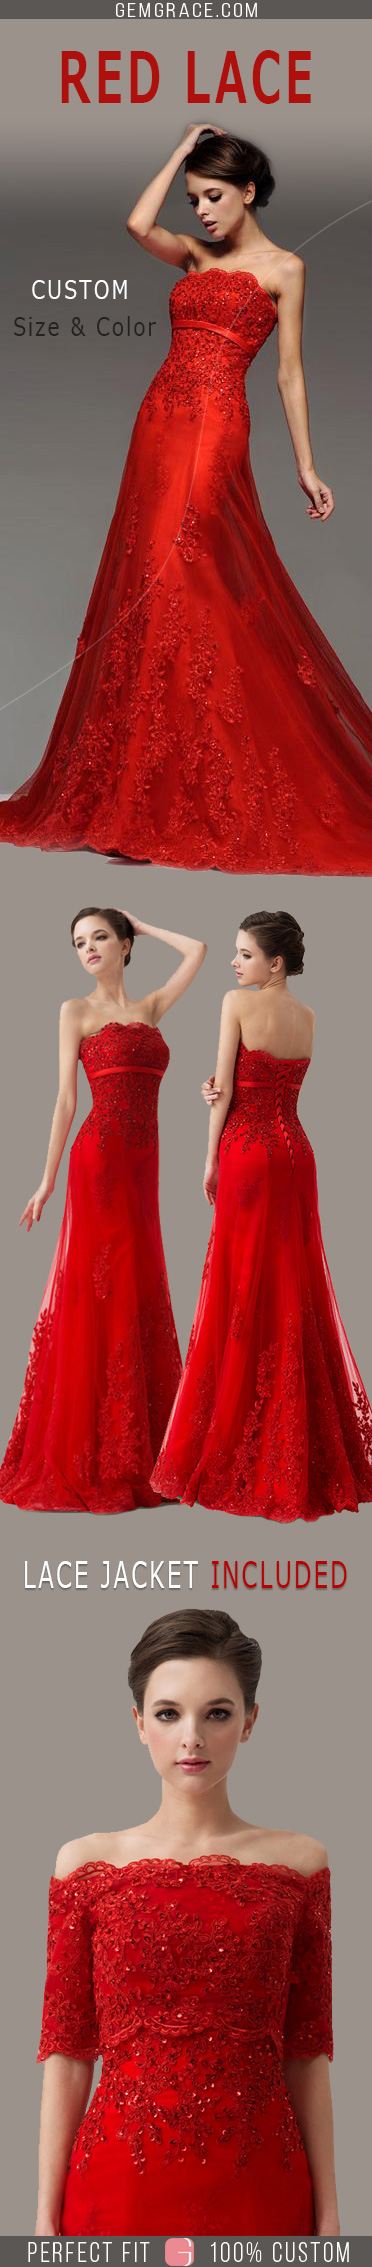 Red Sequin Lace Wedding Dress